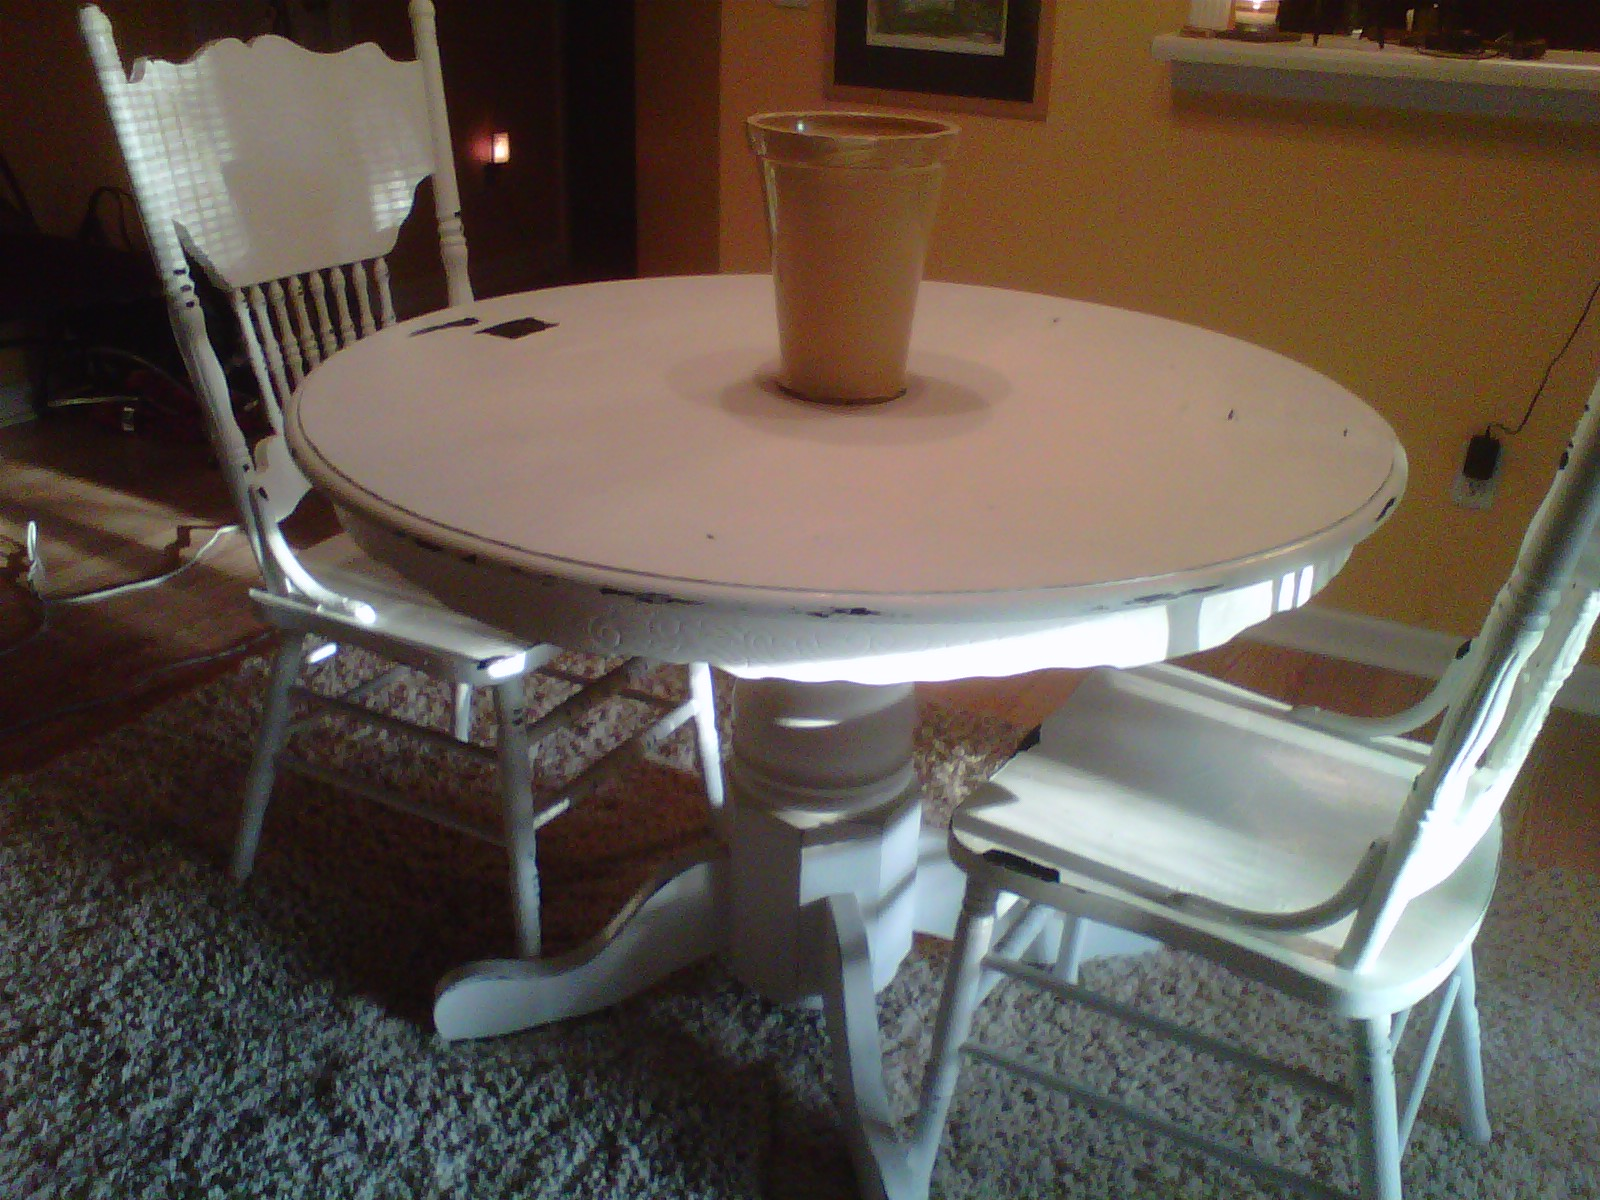 2 vintage sisters kitchen table makeover - Kitchen table redo ...